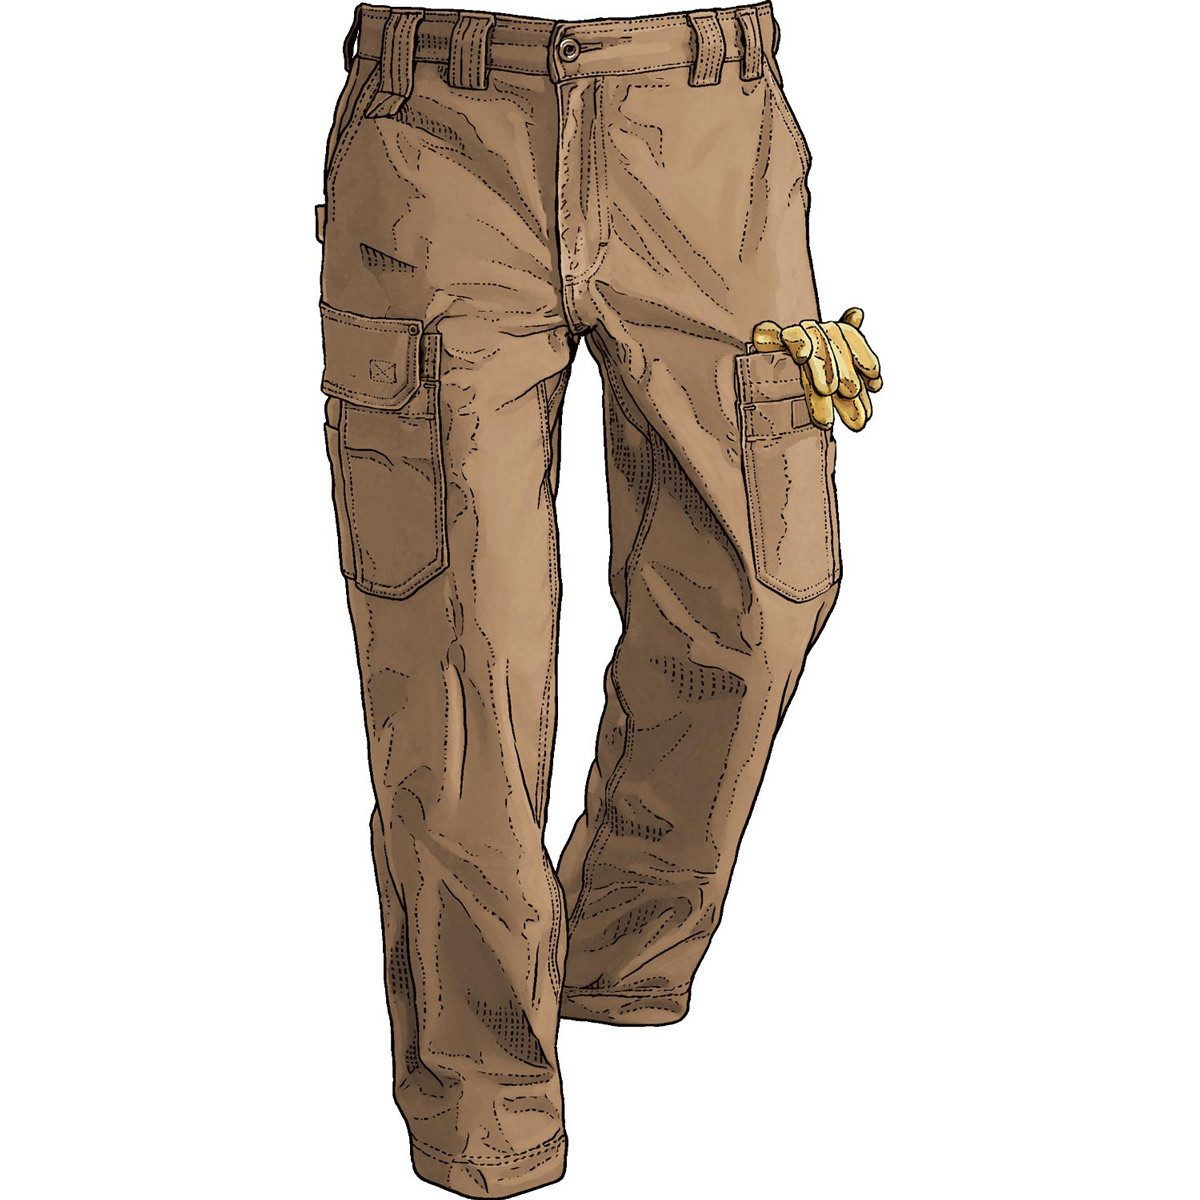 45507_brn-1200x1200 Durable Work Pants